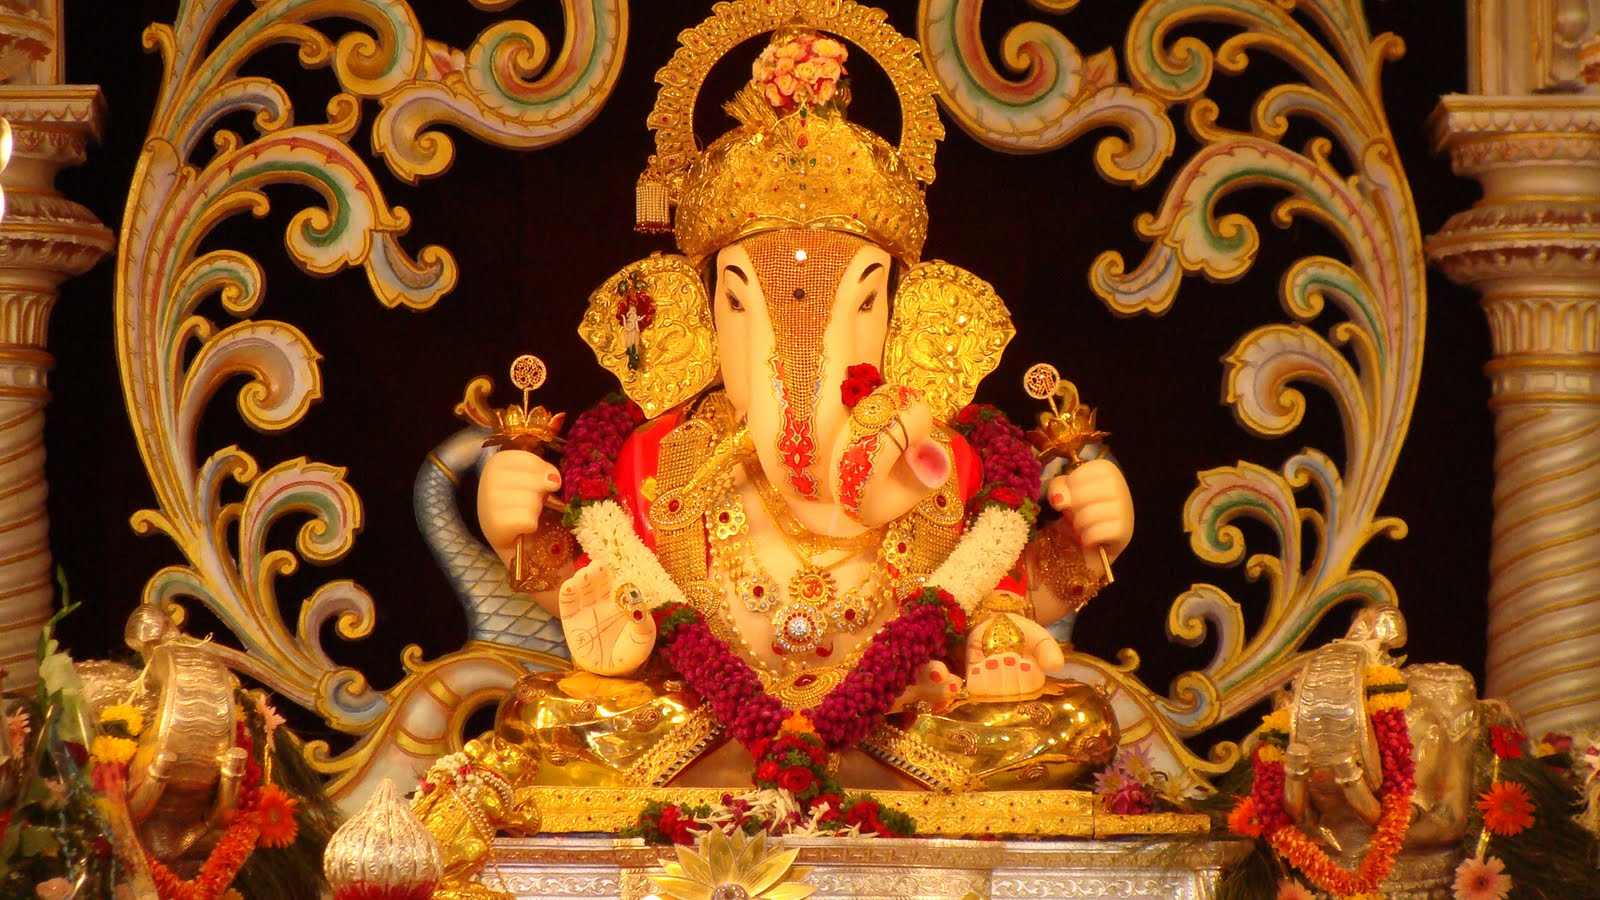 Why Offer Flowers And Fruits To Lord Ganesha?